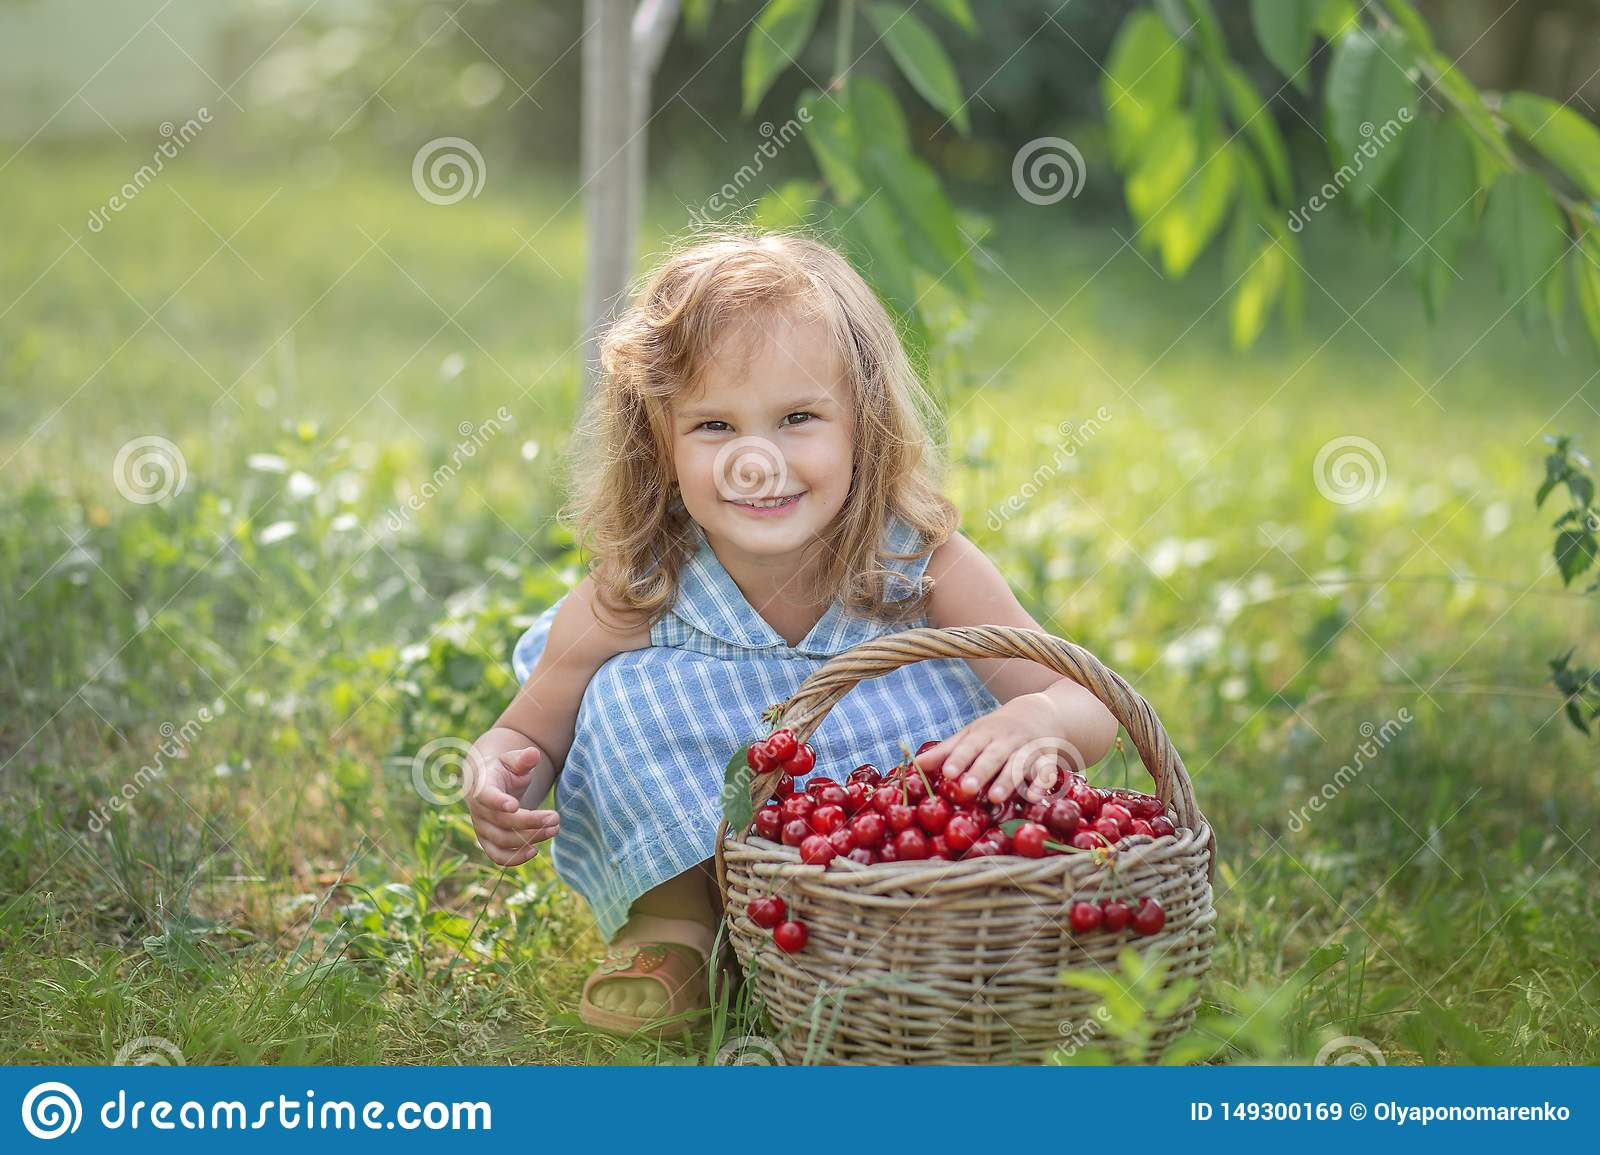 Ripe and sweet summer berries in the orchard